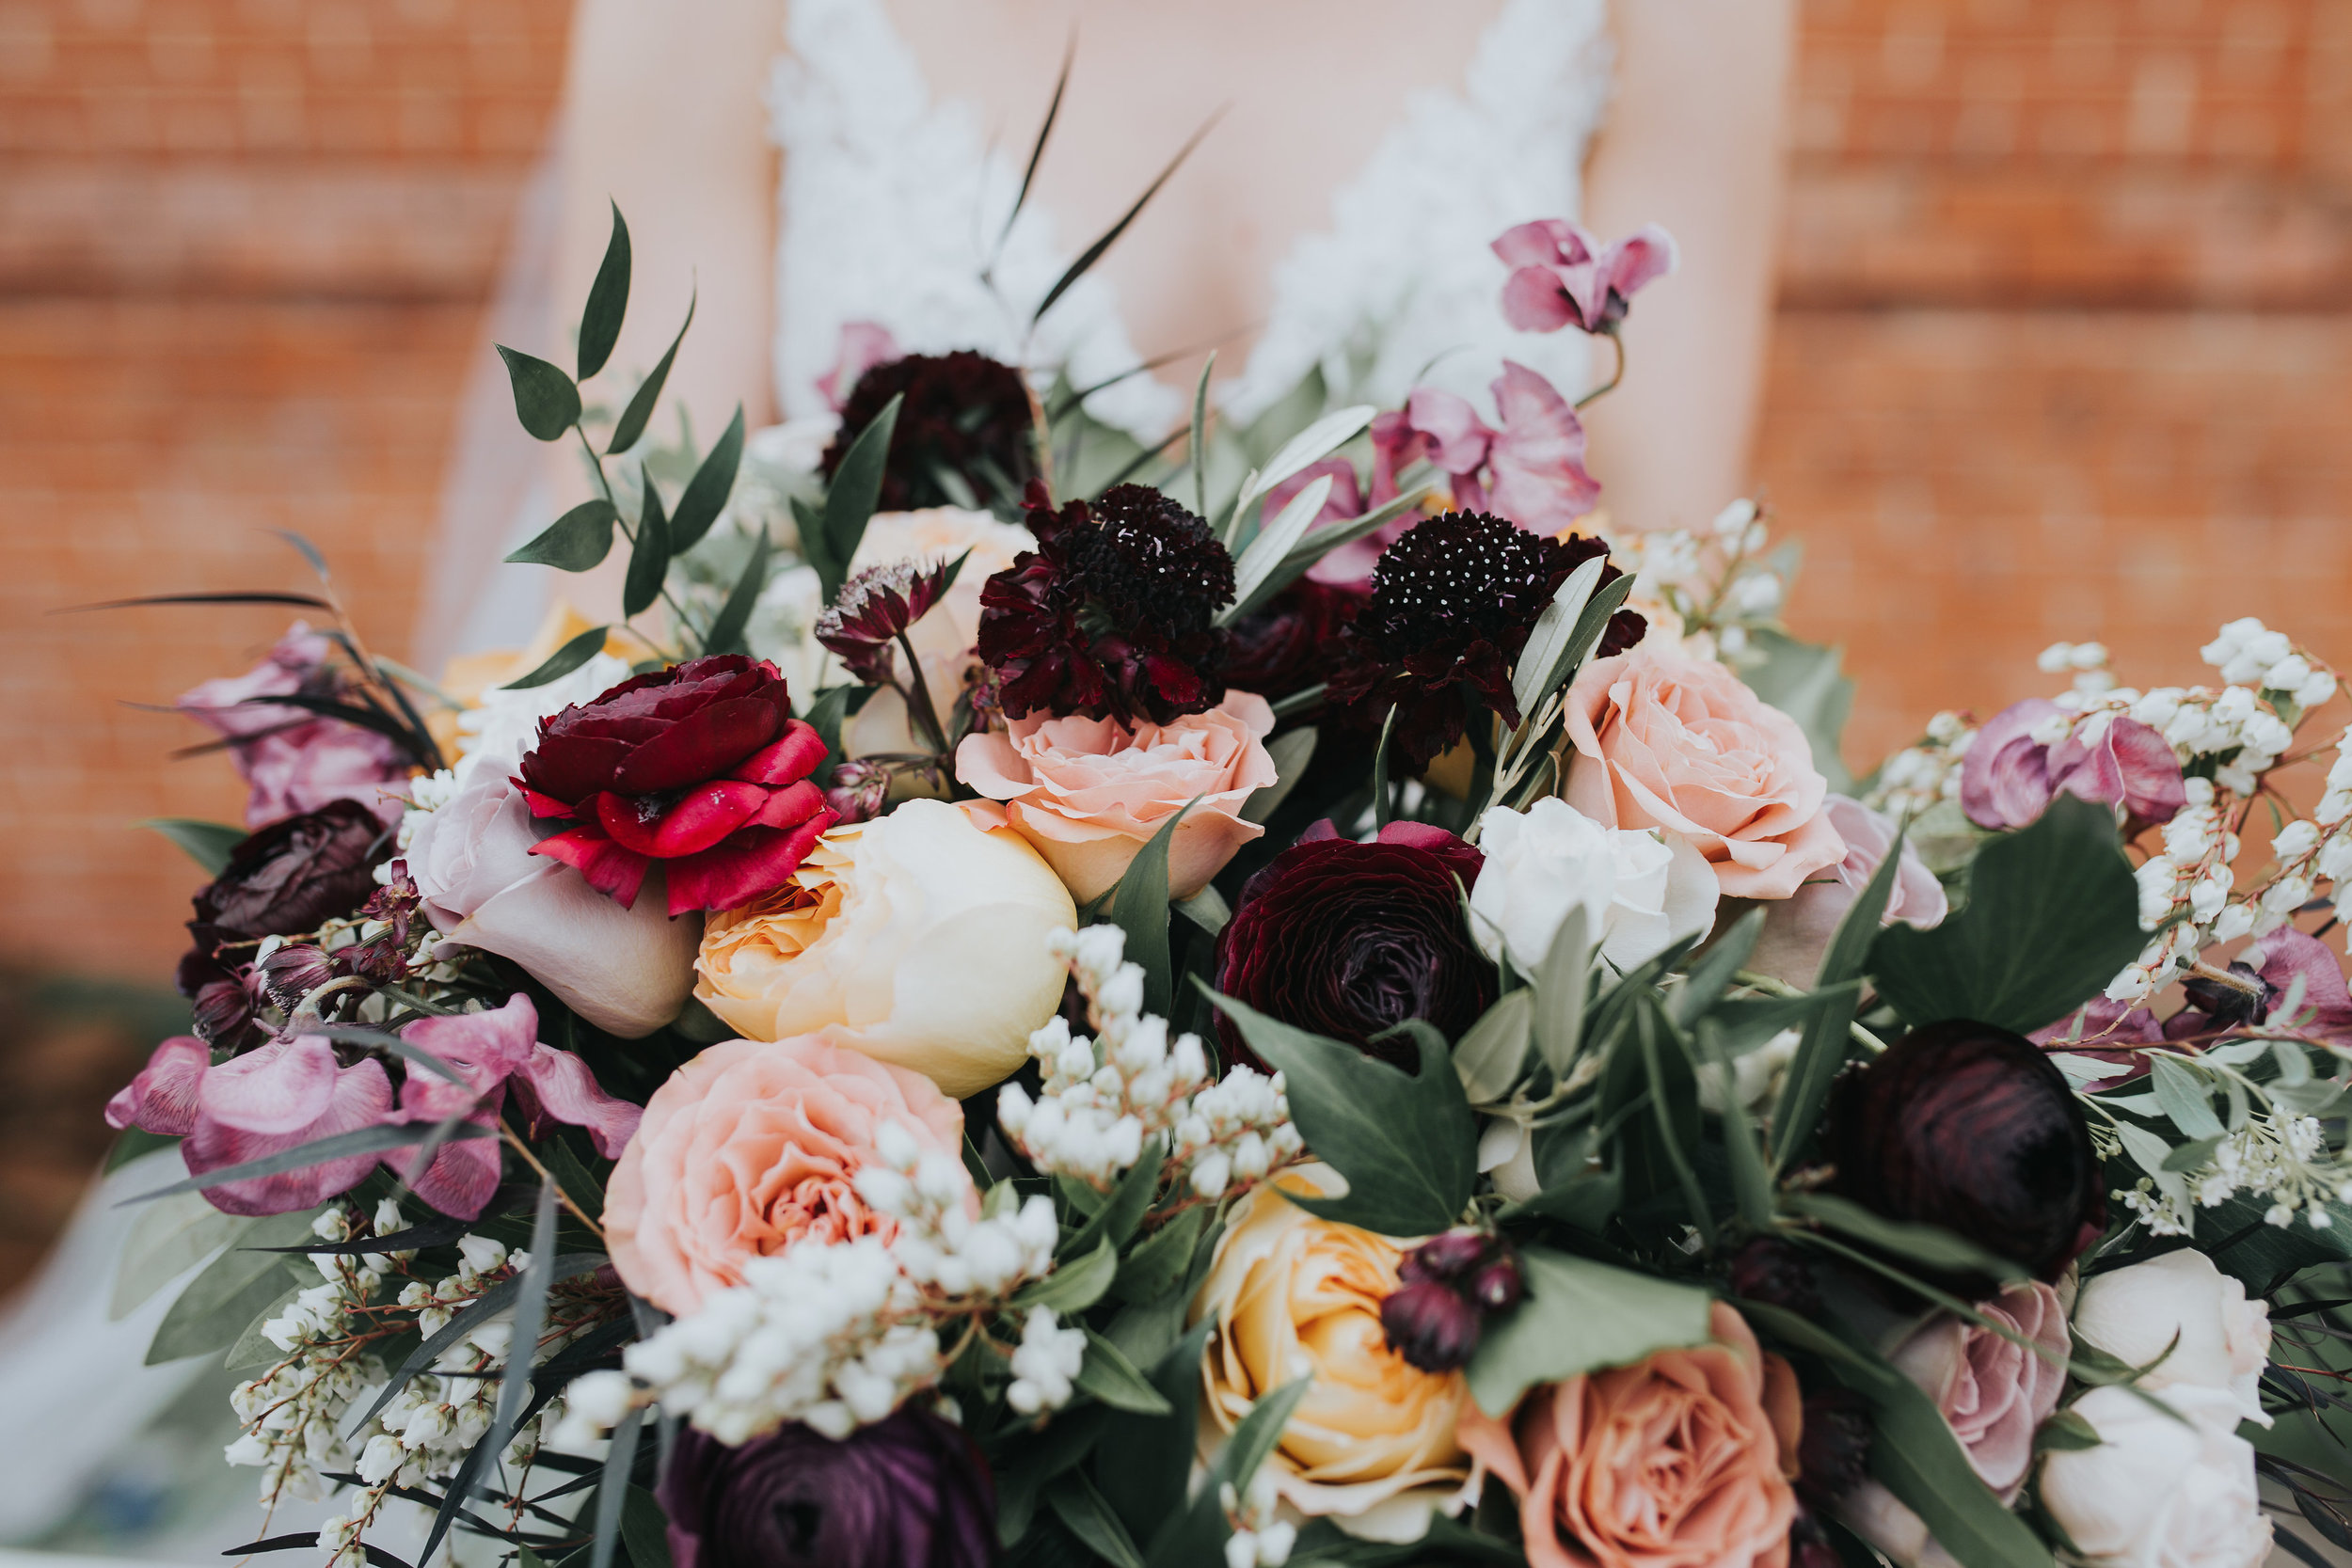 If you don't want to stress over the details, but you want your wedding to look beautiful then take a look at our design package! Let us help by recommending vendors, creating a design board, and working out all the decor details including table top selections. -